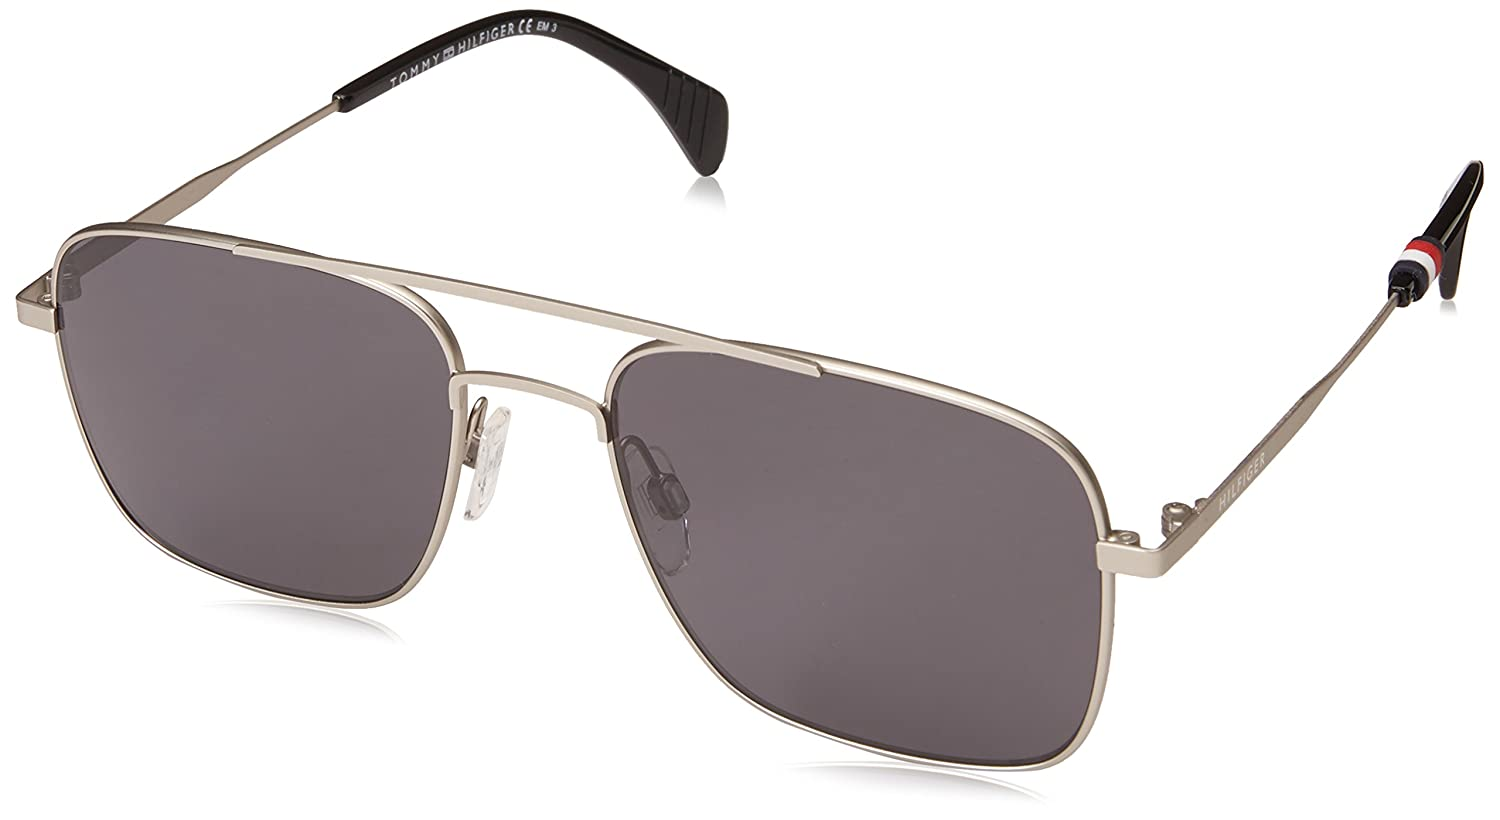 Gafas de Sol Tommy Hilfiger TH 1537/S 011 (IR): Amazon.es ...